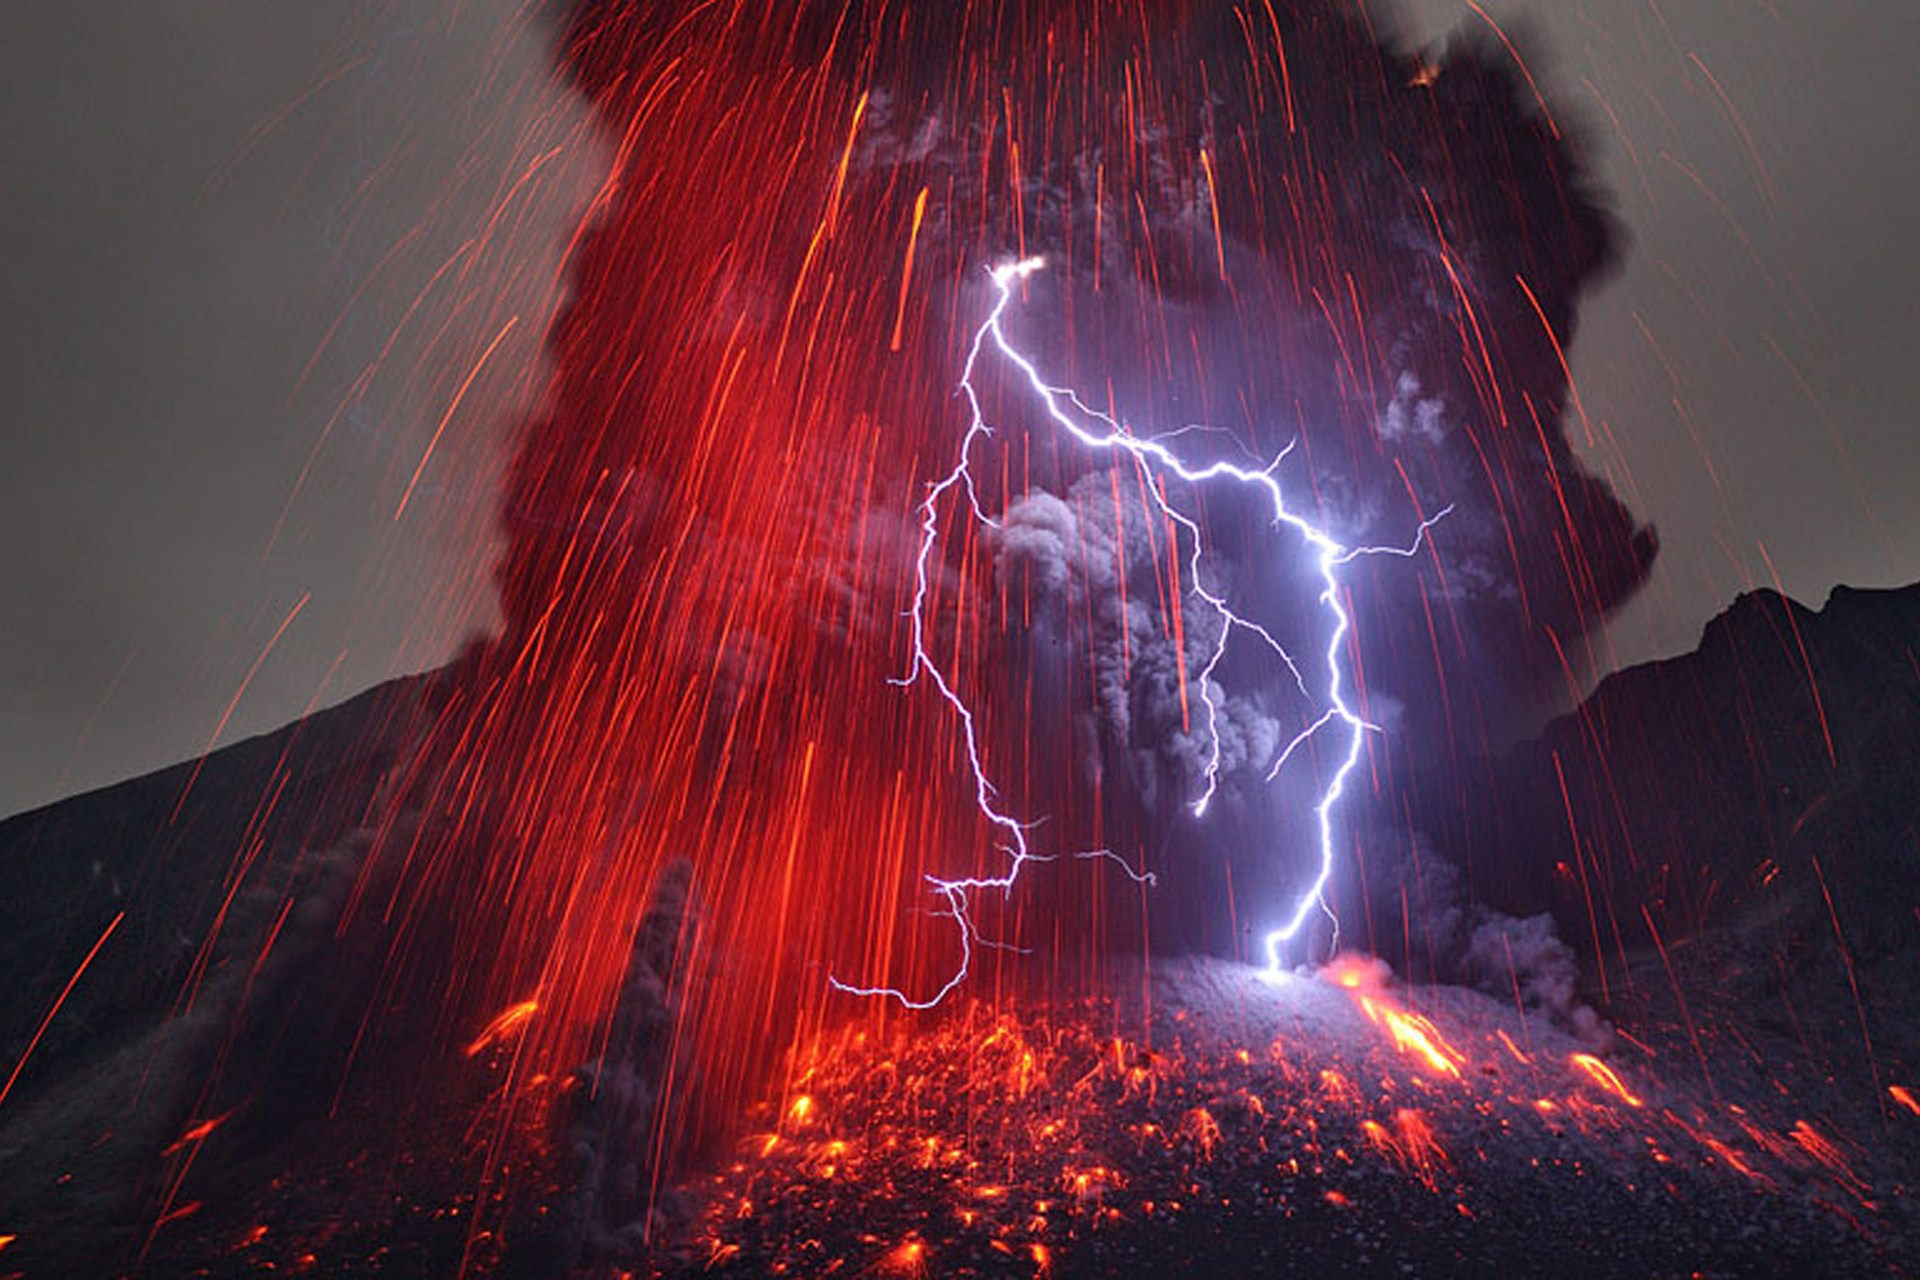 volcanic lightning, volcanic lightning photo, volcanic lightning picture, Incredible Natural Phenomenon - Volcanic Lightning during SAKURAJIMA ERUPTION. Photo by Martin Rietze